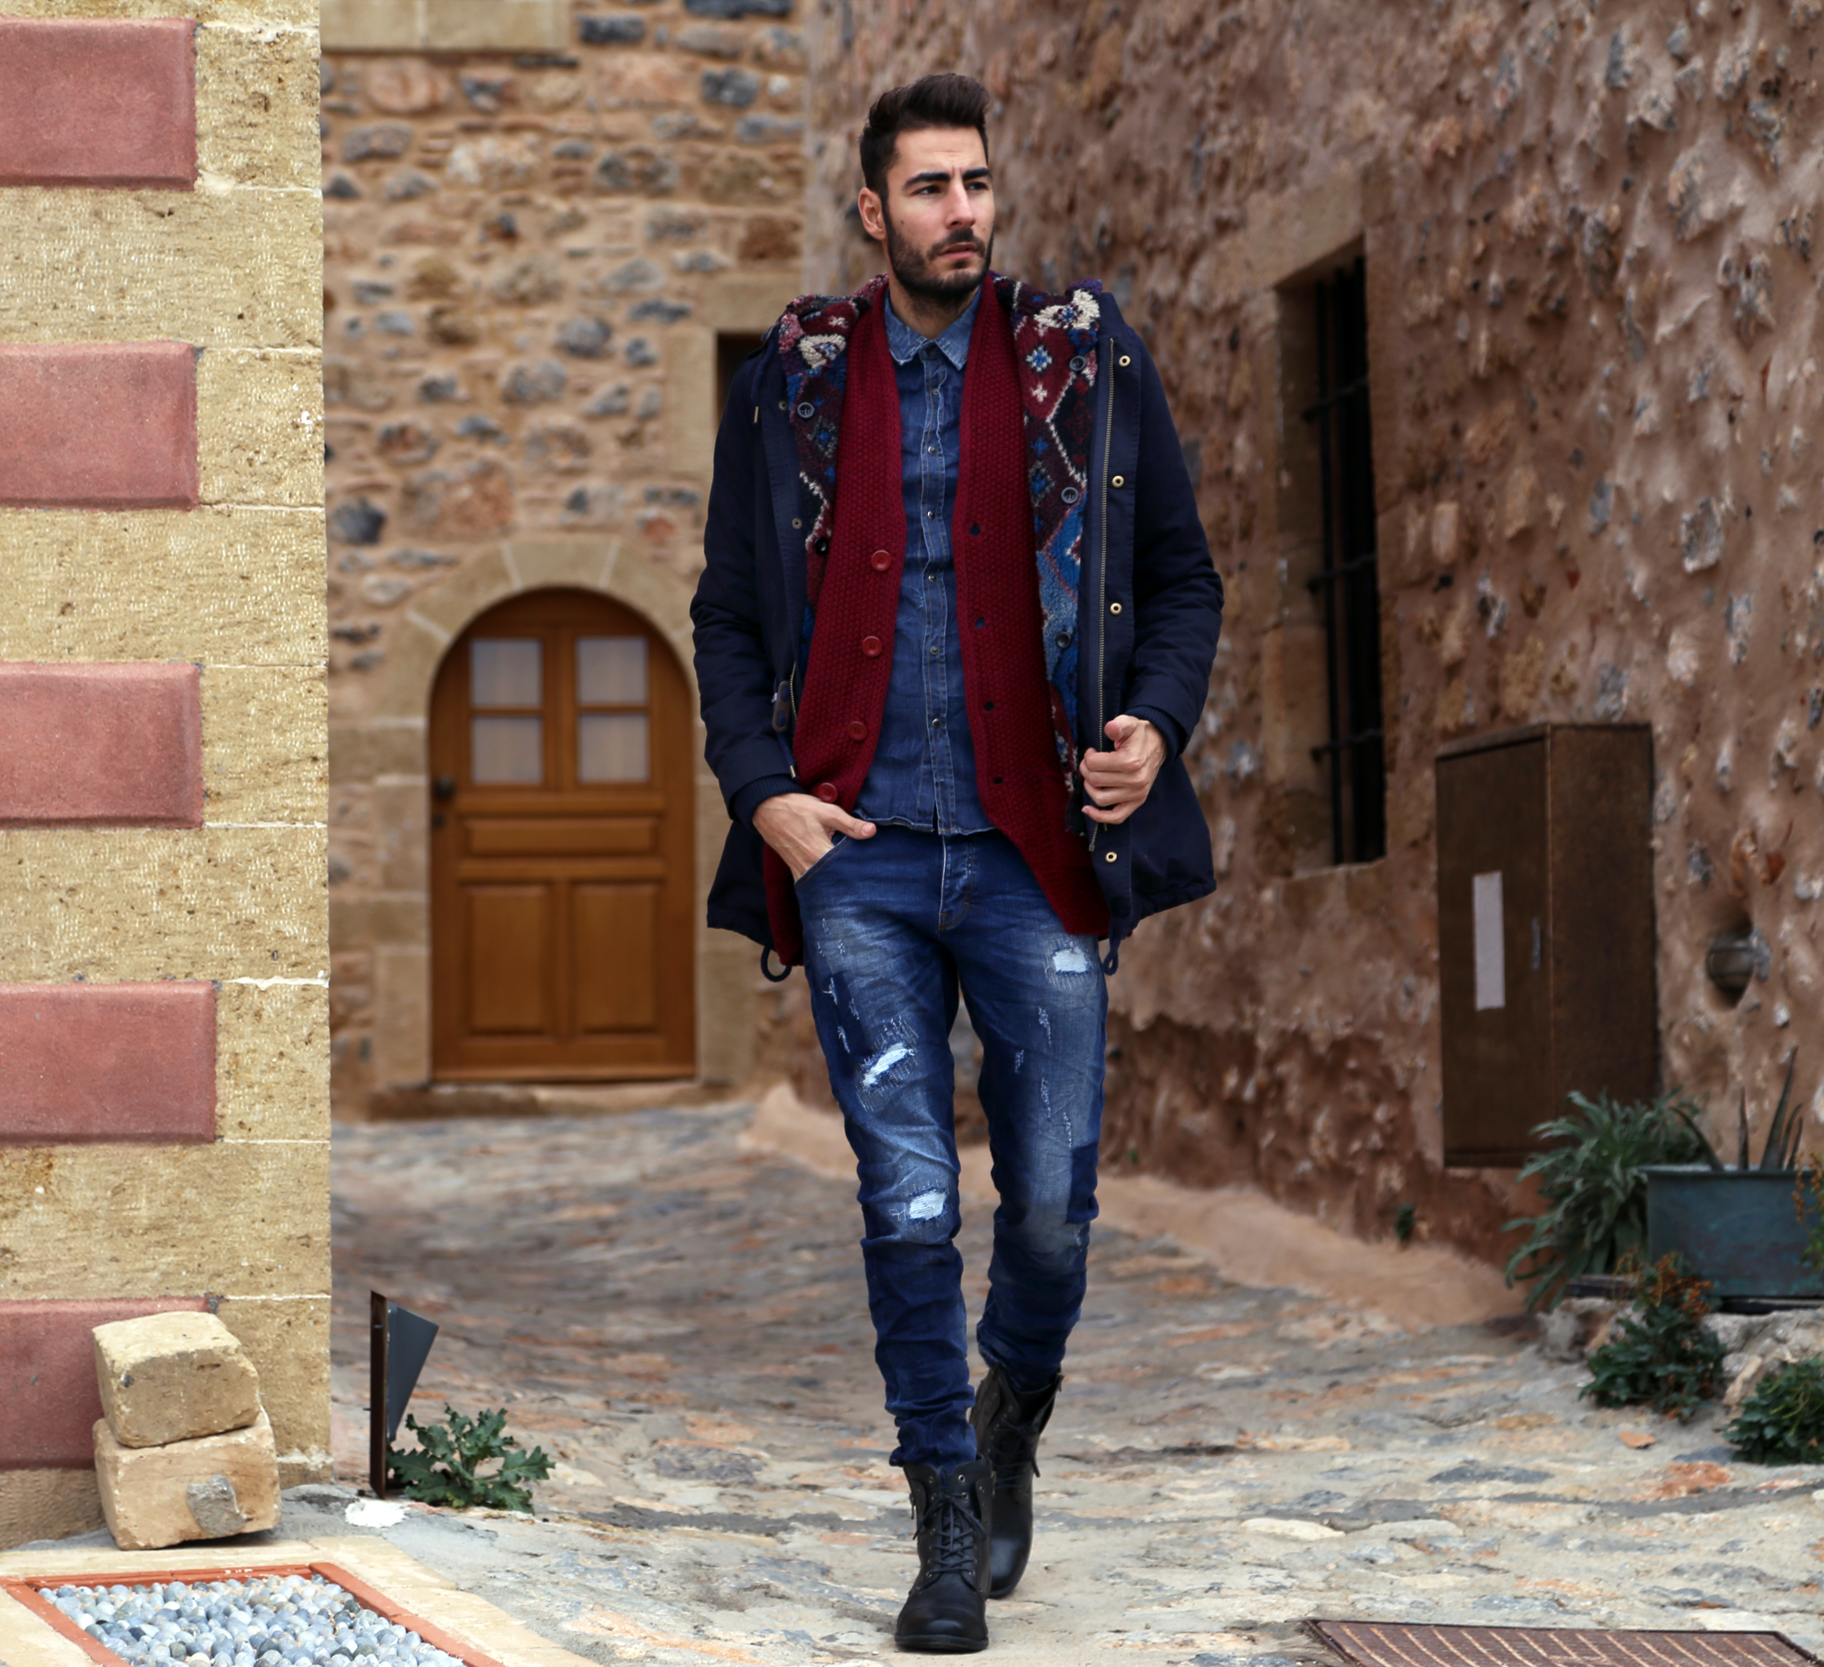 ec6458f56e3e The Virtue of Layering - Jabastore Fashion Blog